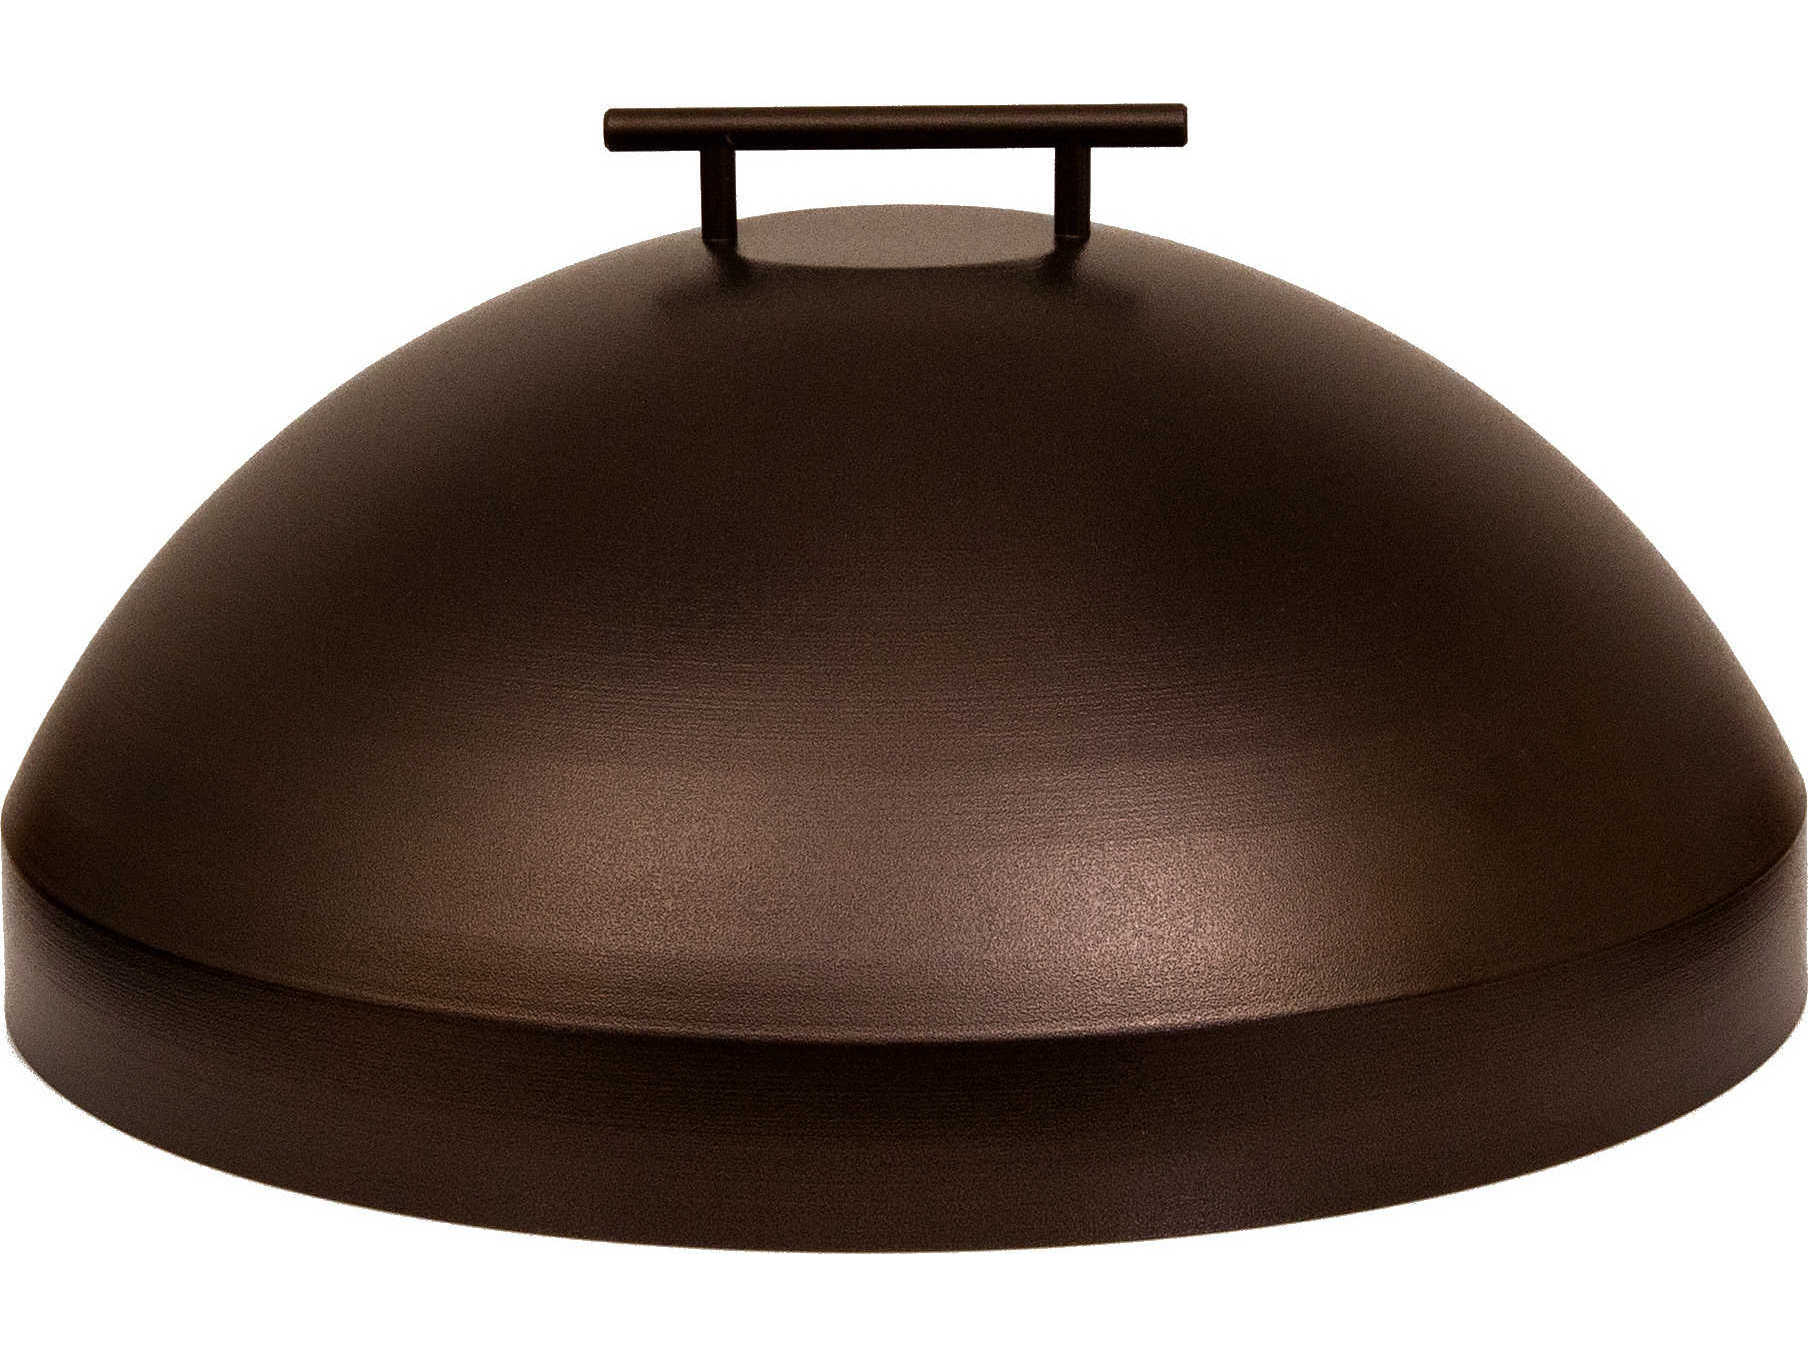 OW Lee Casual Fireside Wrought Iron Round Burner 20 Fire ...